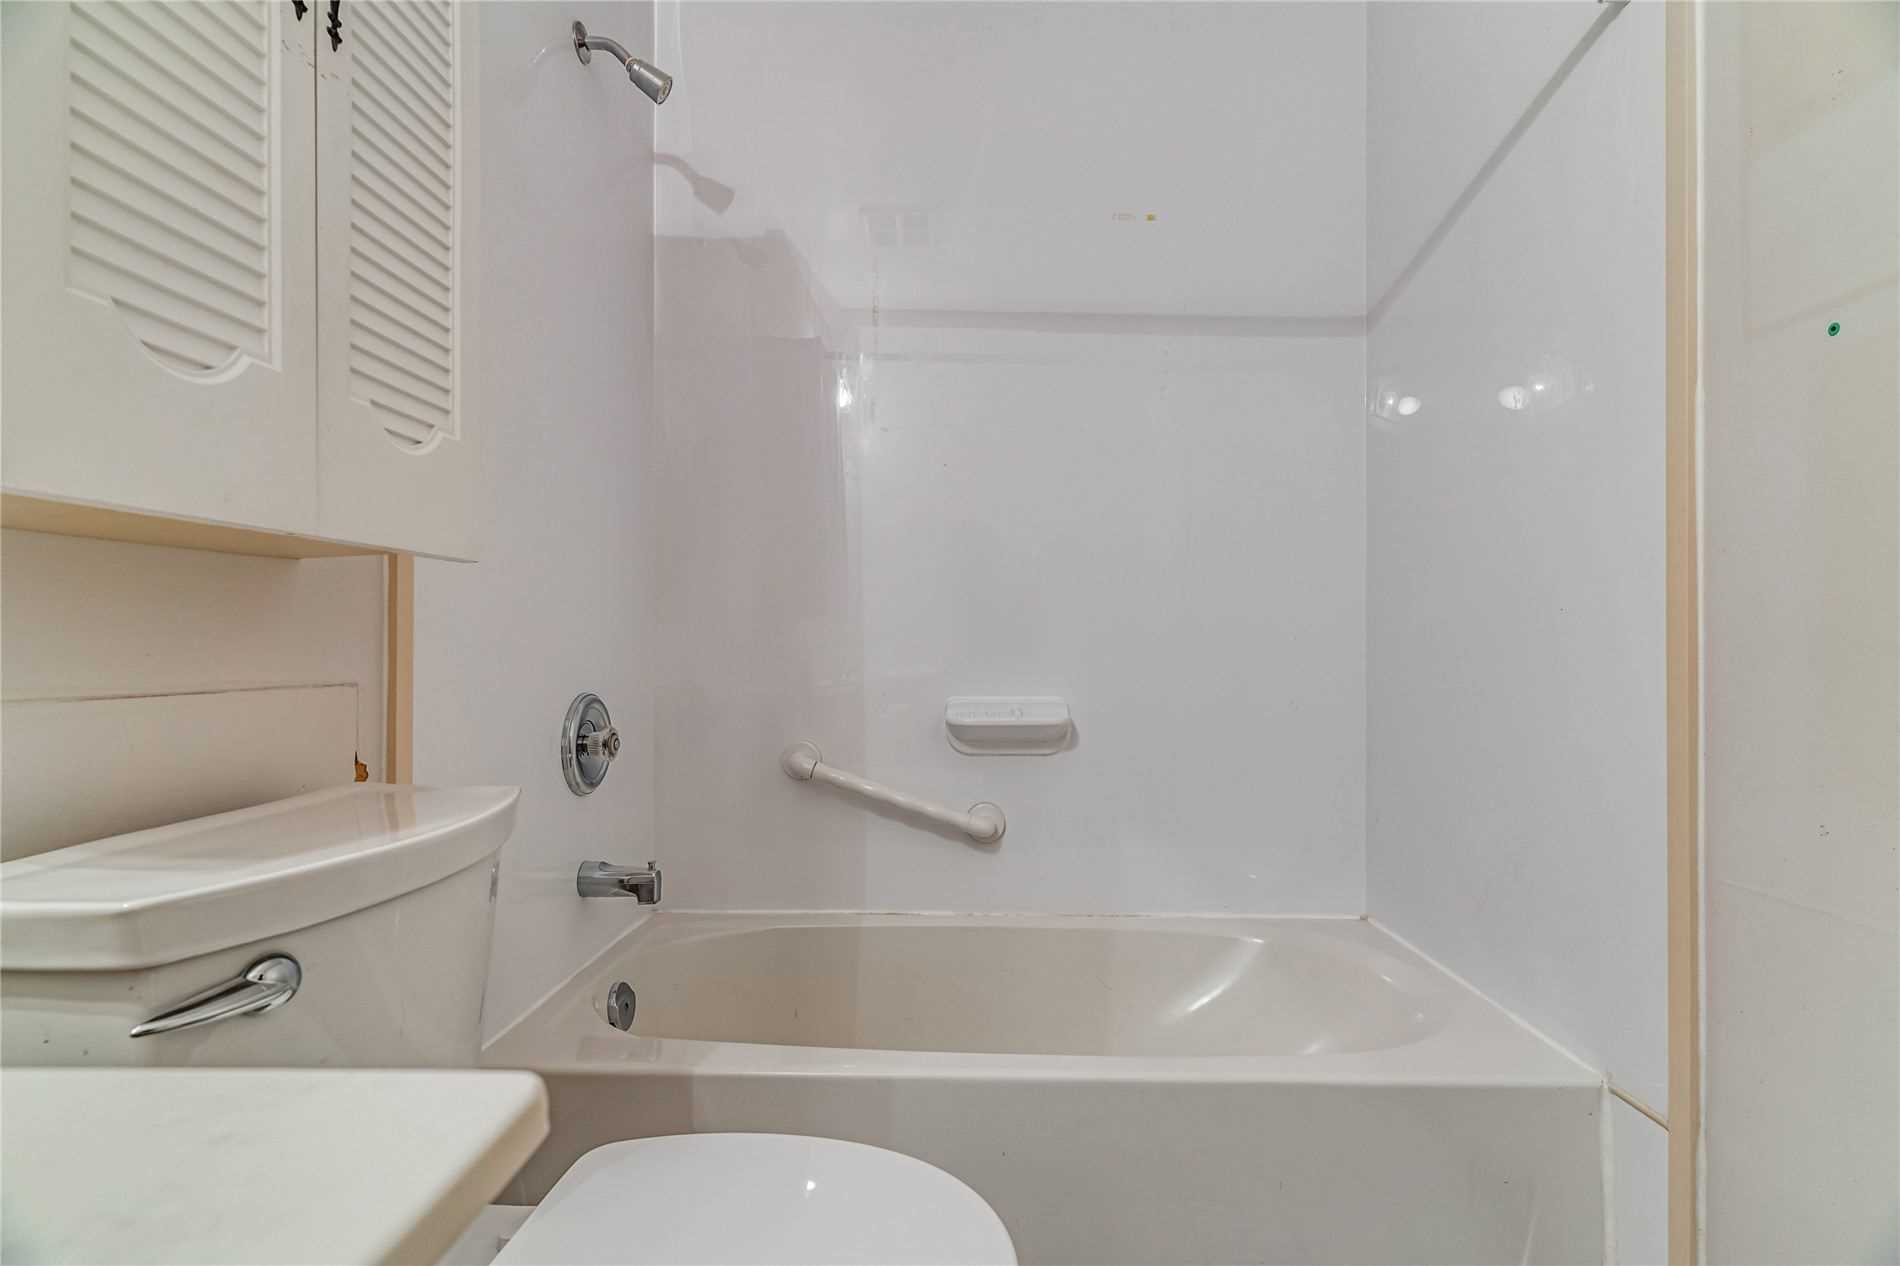 Image 25 of 40 showing inside of 2 Bedroom Condo Apt Apartment for Sale at 1665 Pickering Pkwy Unit# 812, Pickering L1V6L4